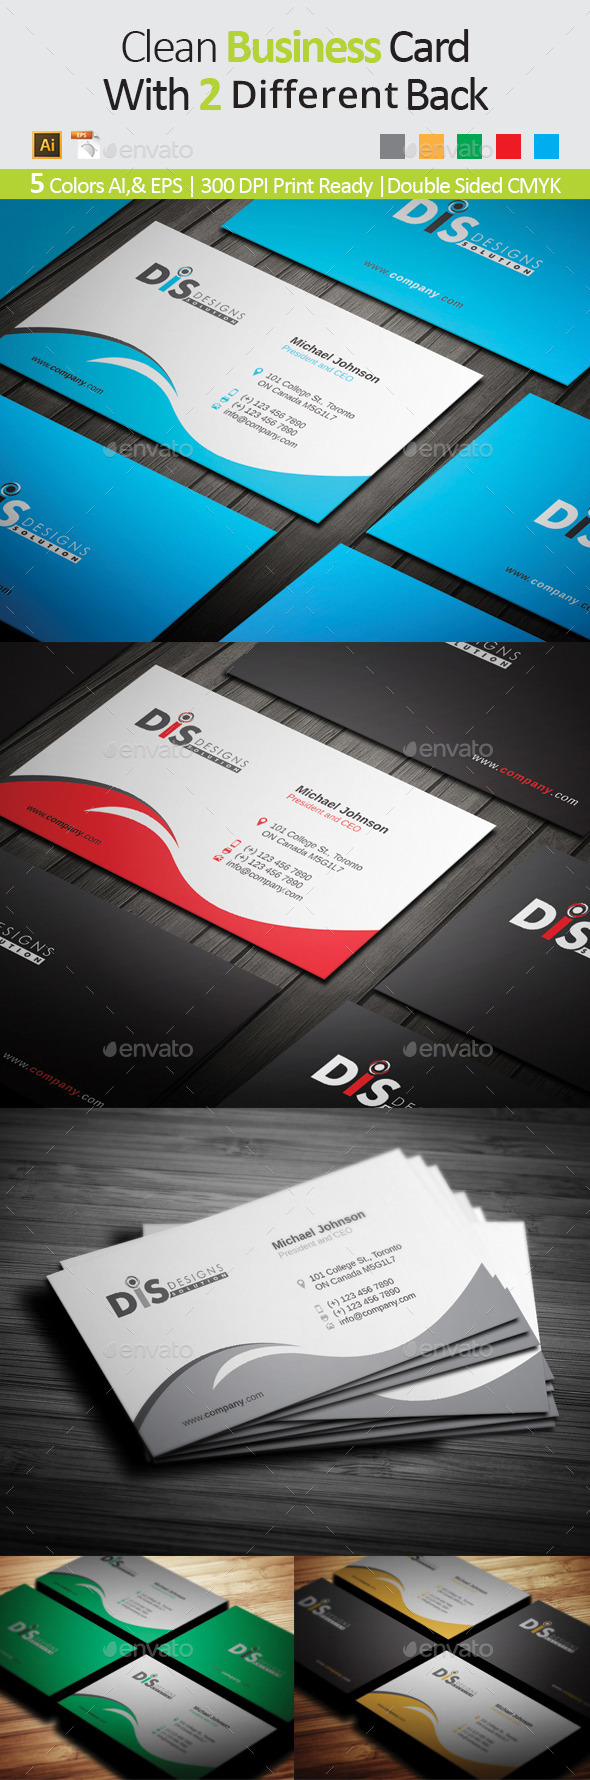 Business Card 01 - Business Cards Print Templates